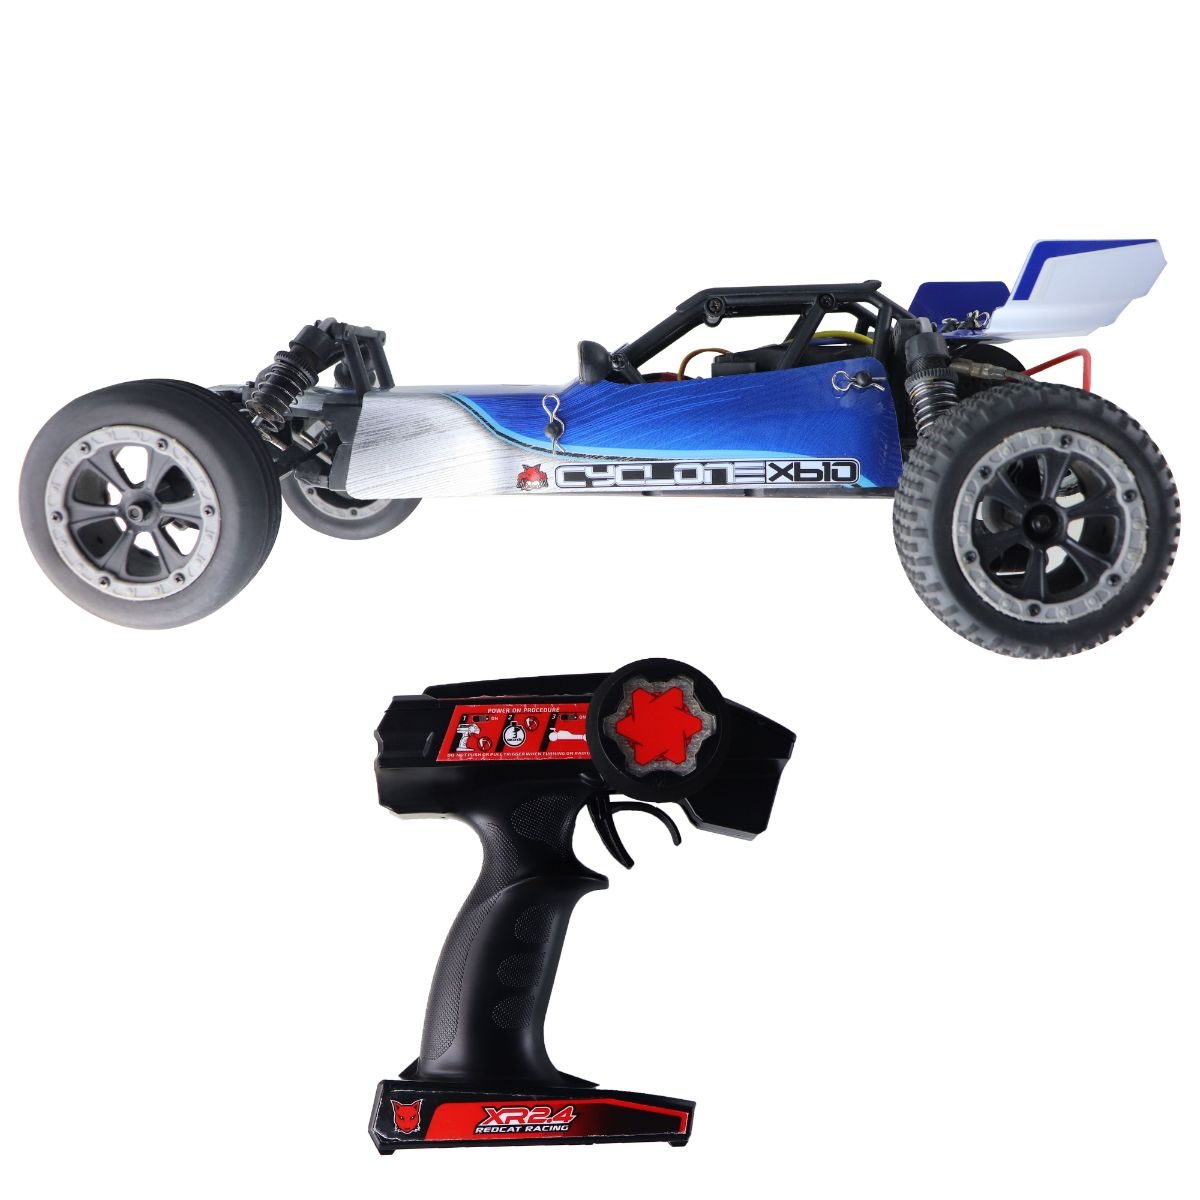 Redcat Racing Radio Control Dune Buggy Cyclone Xb10 - Blue / Black / Gray